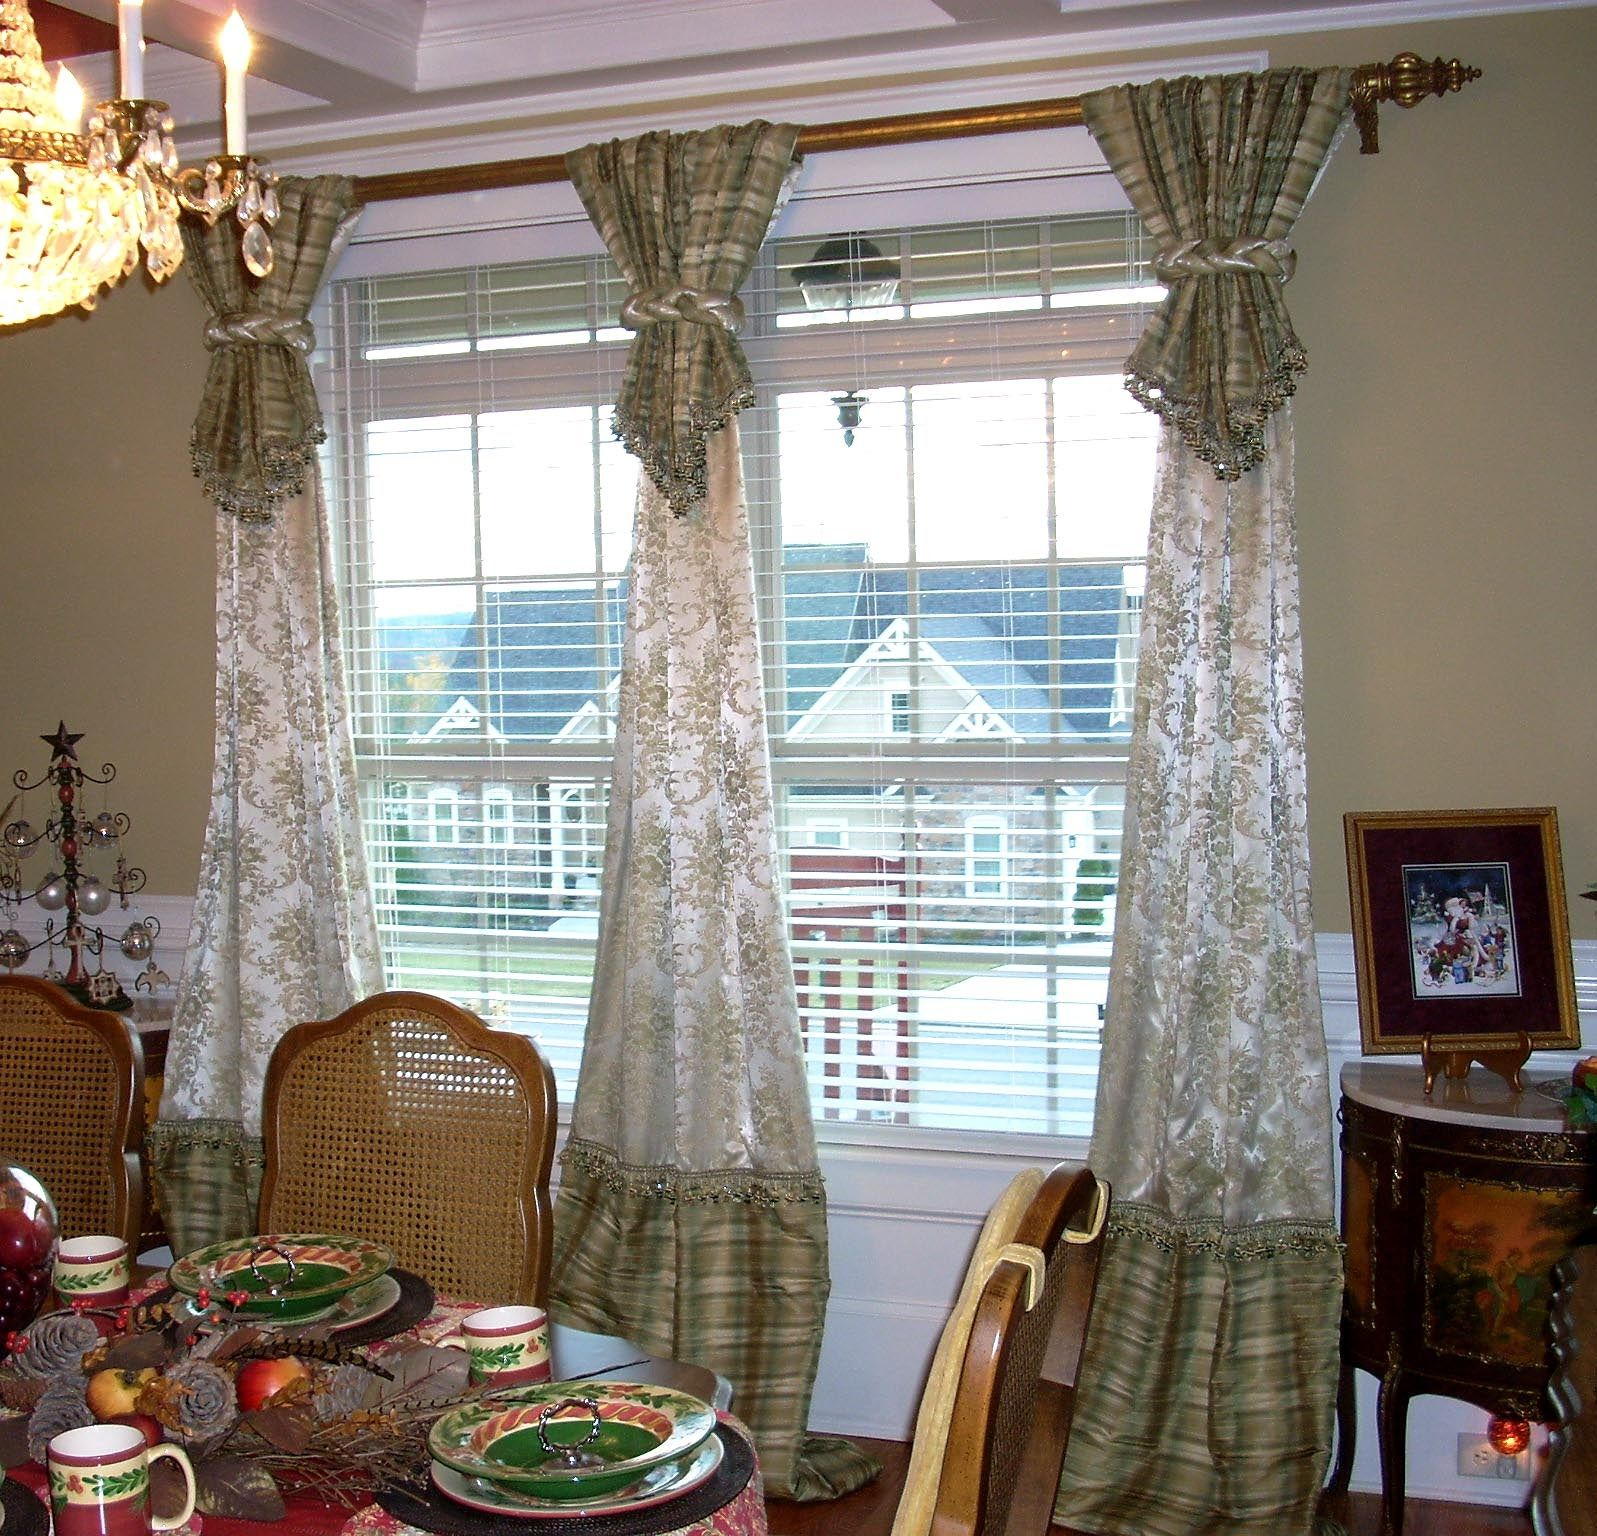 Dining Room Drapes Design Ideas Breathtaking Dining Room Window Treatment Ideas With White Lace